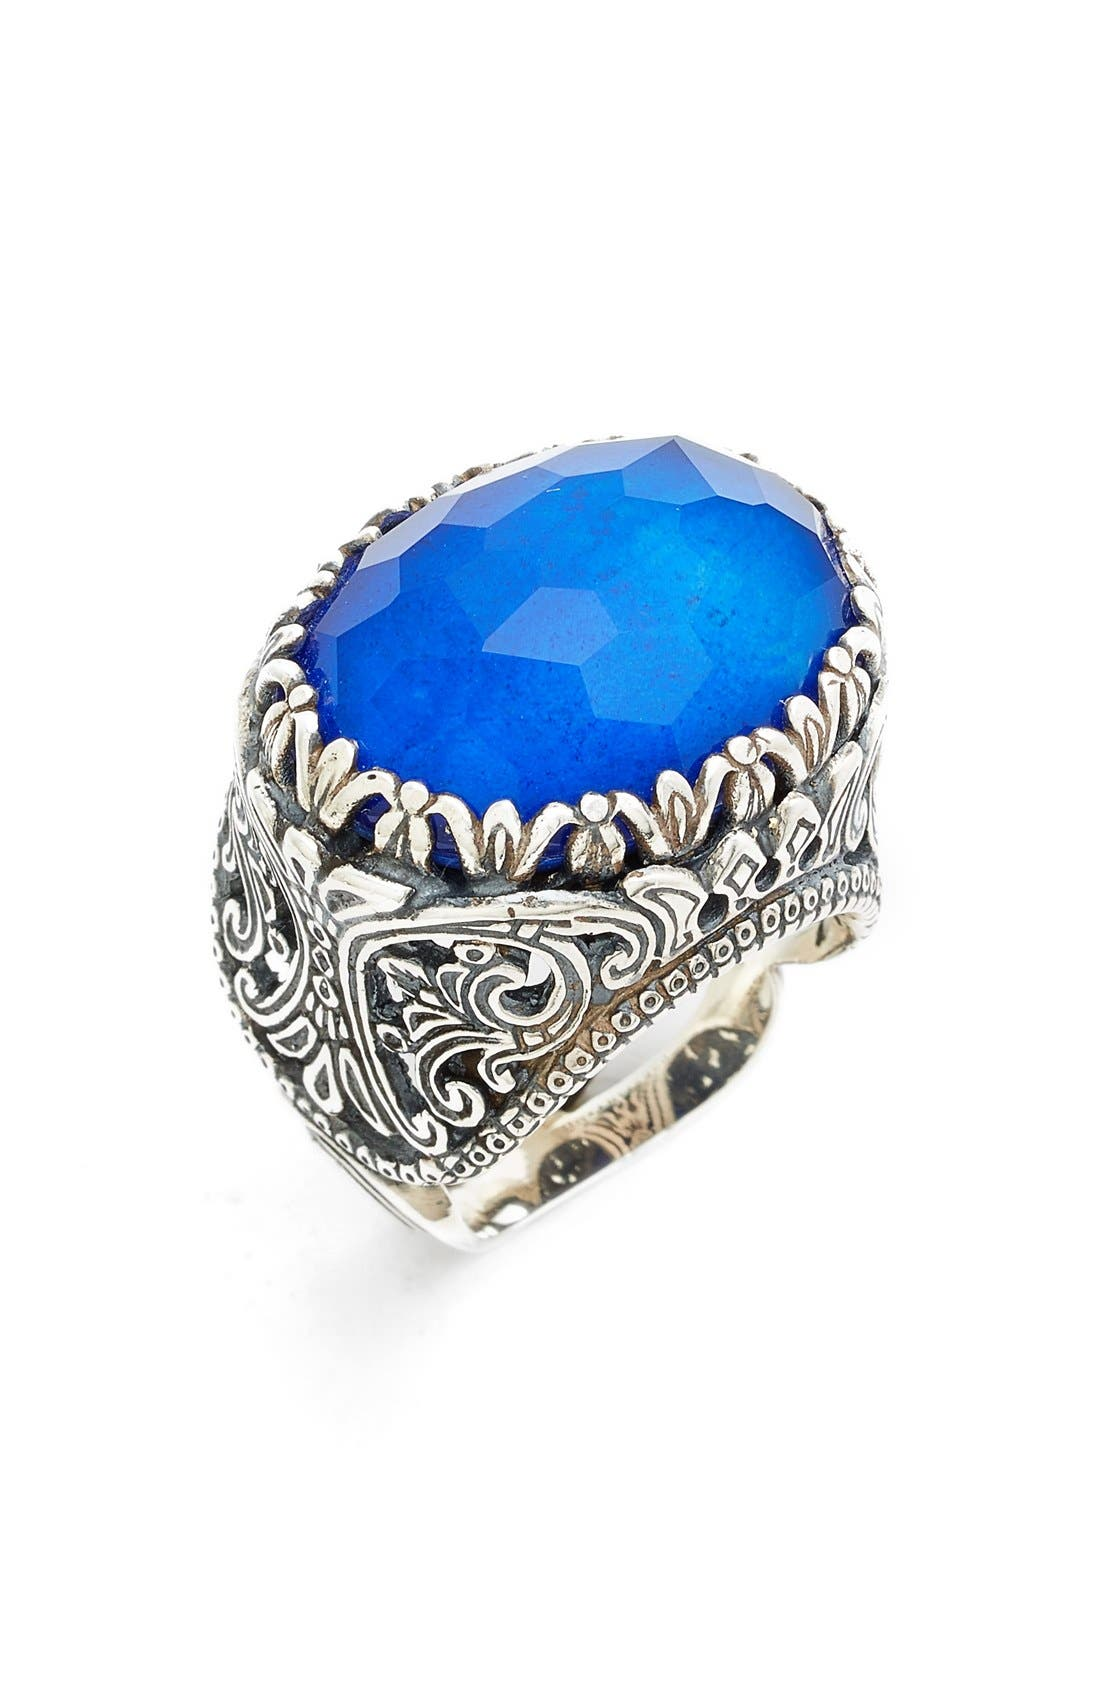 Andromeda Lapis Lazuli Ring,                         Main,                         color, Sterling Silver